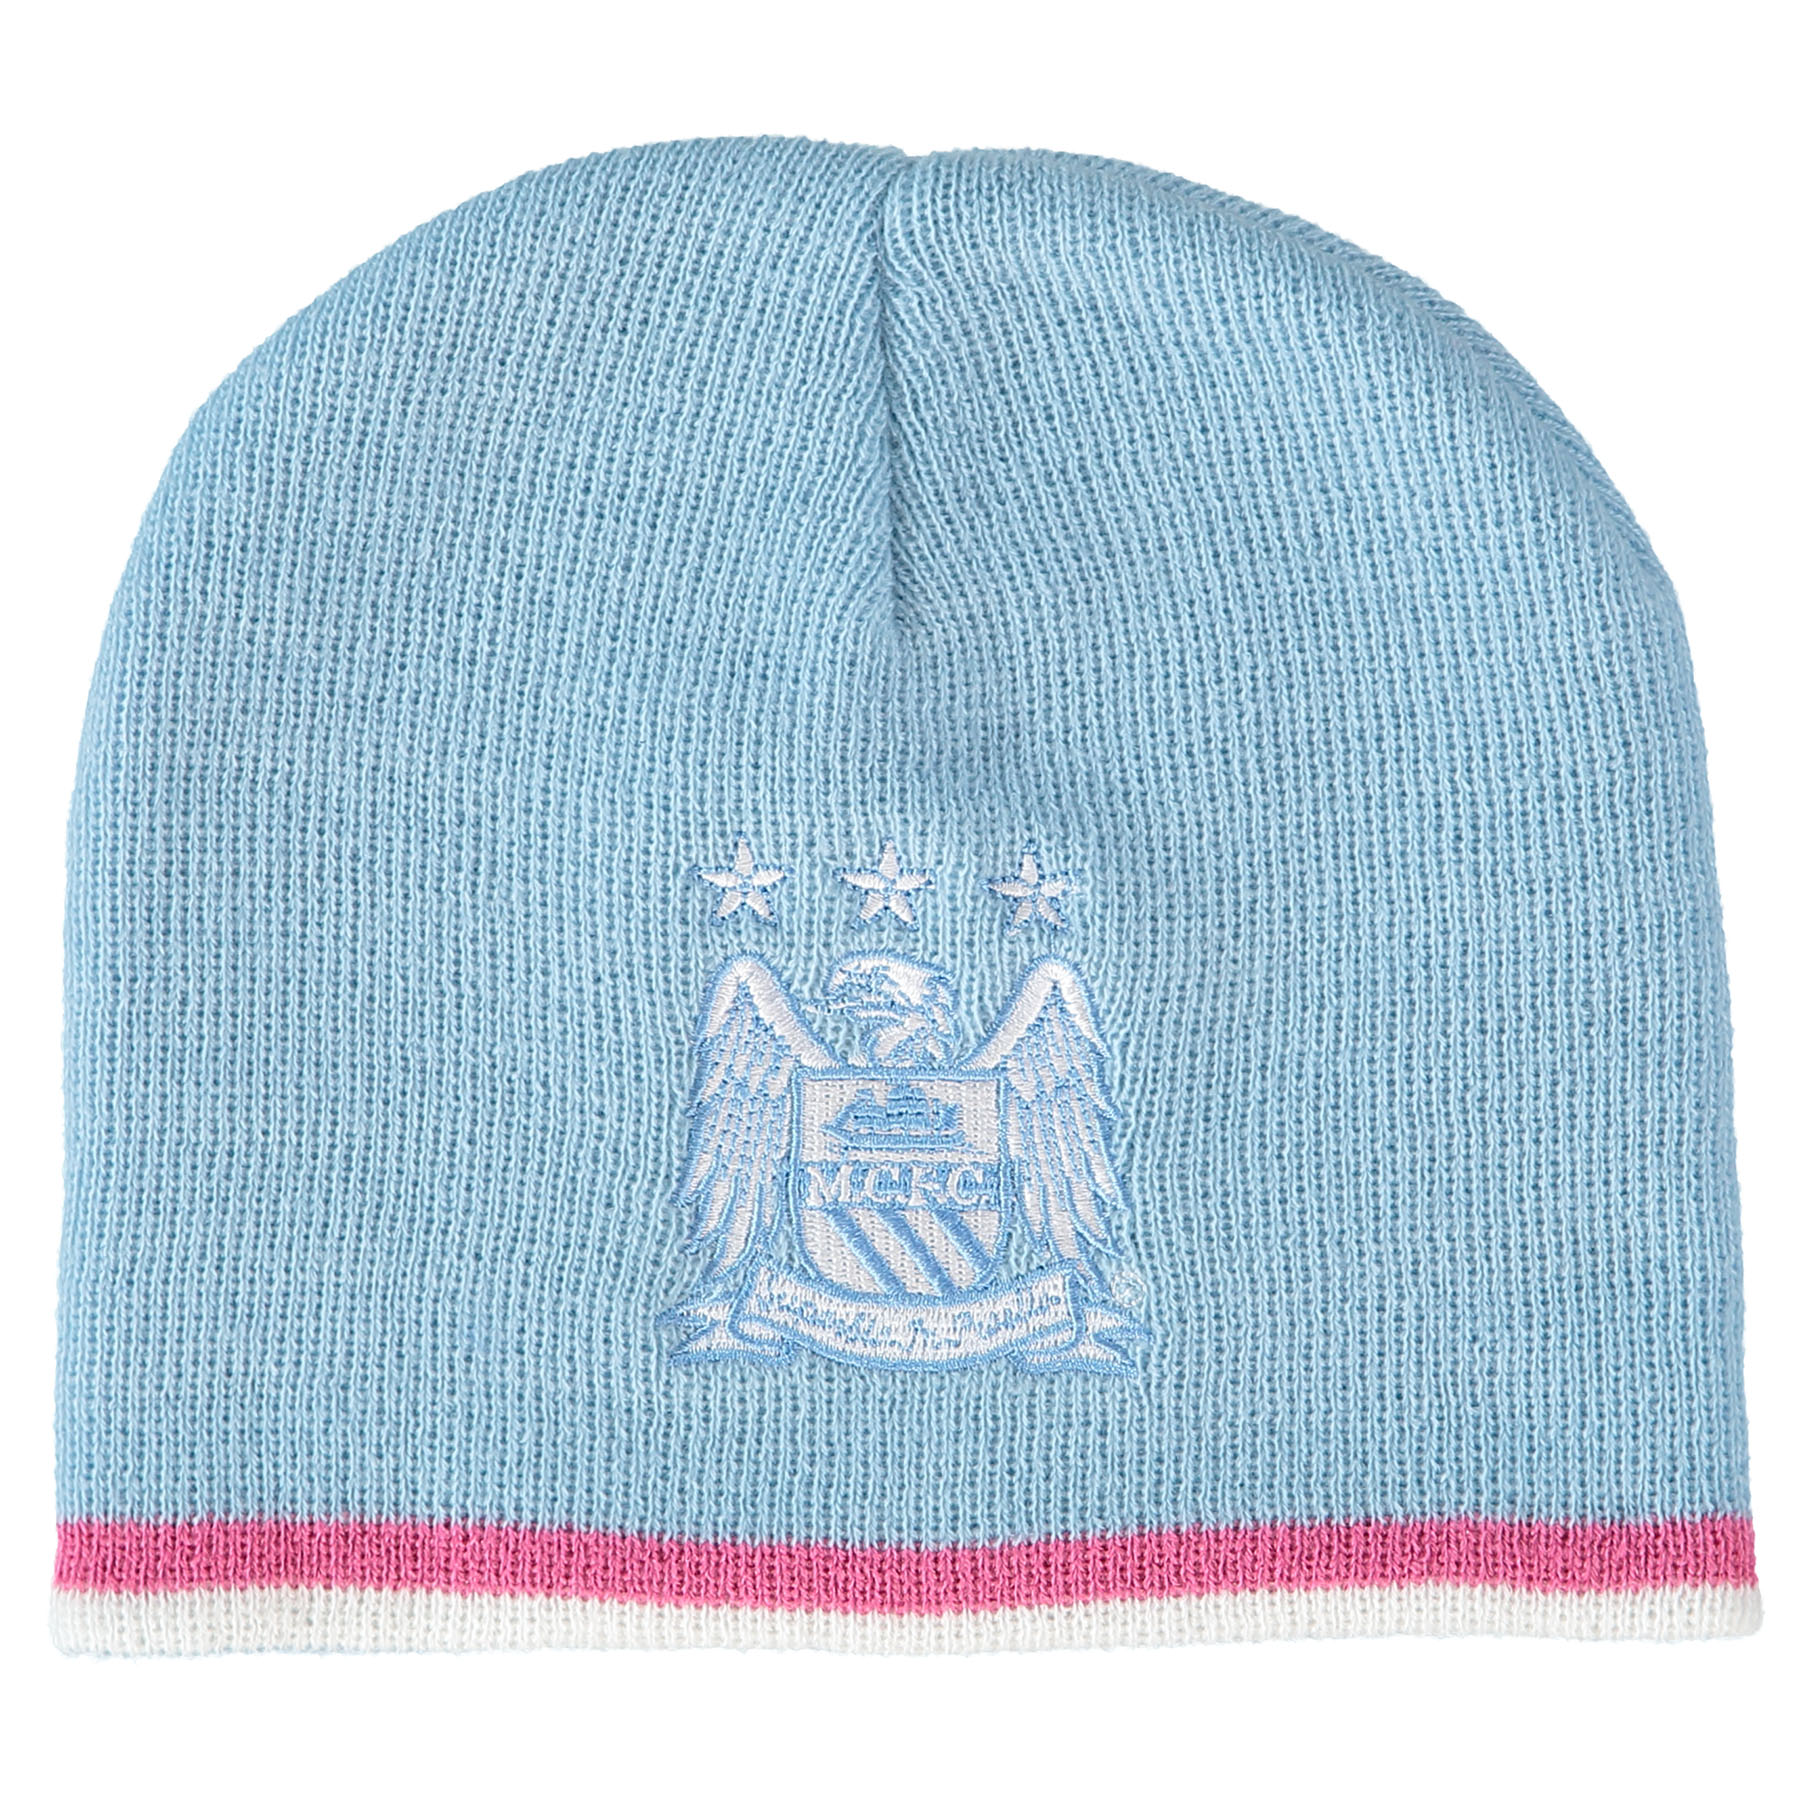 Manchester City Core Hat - Sky/Pink - Adult